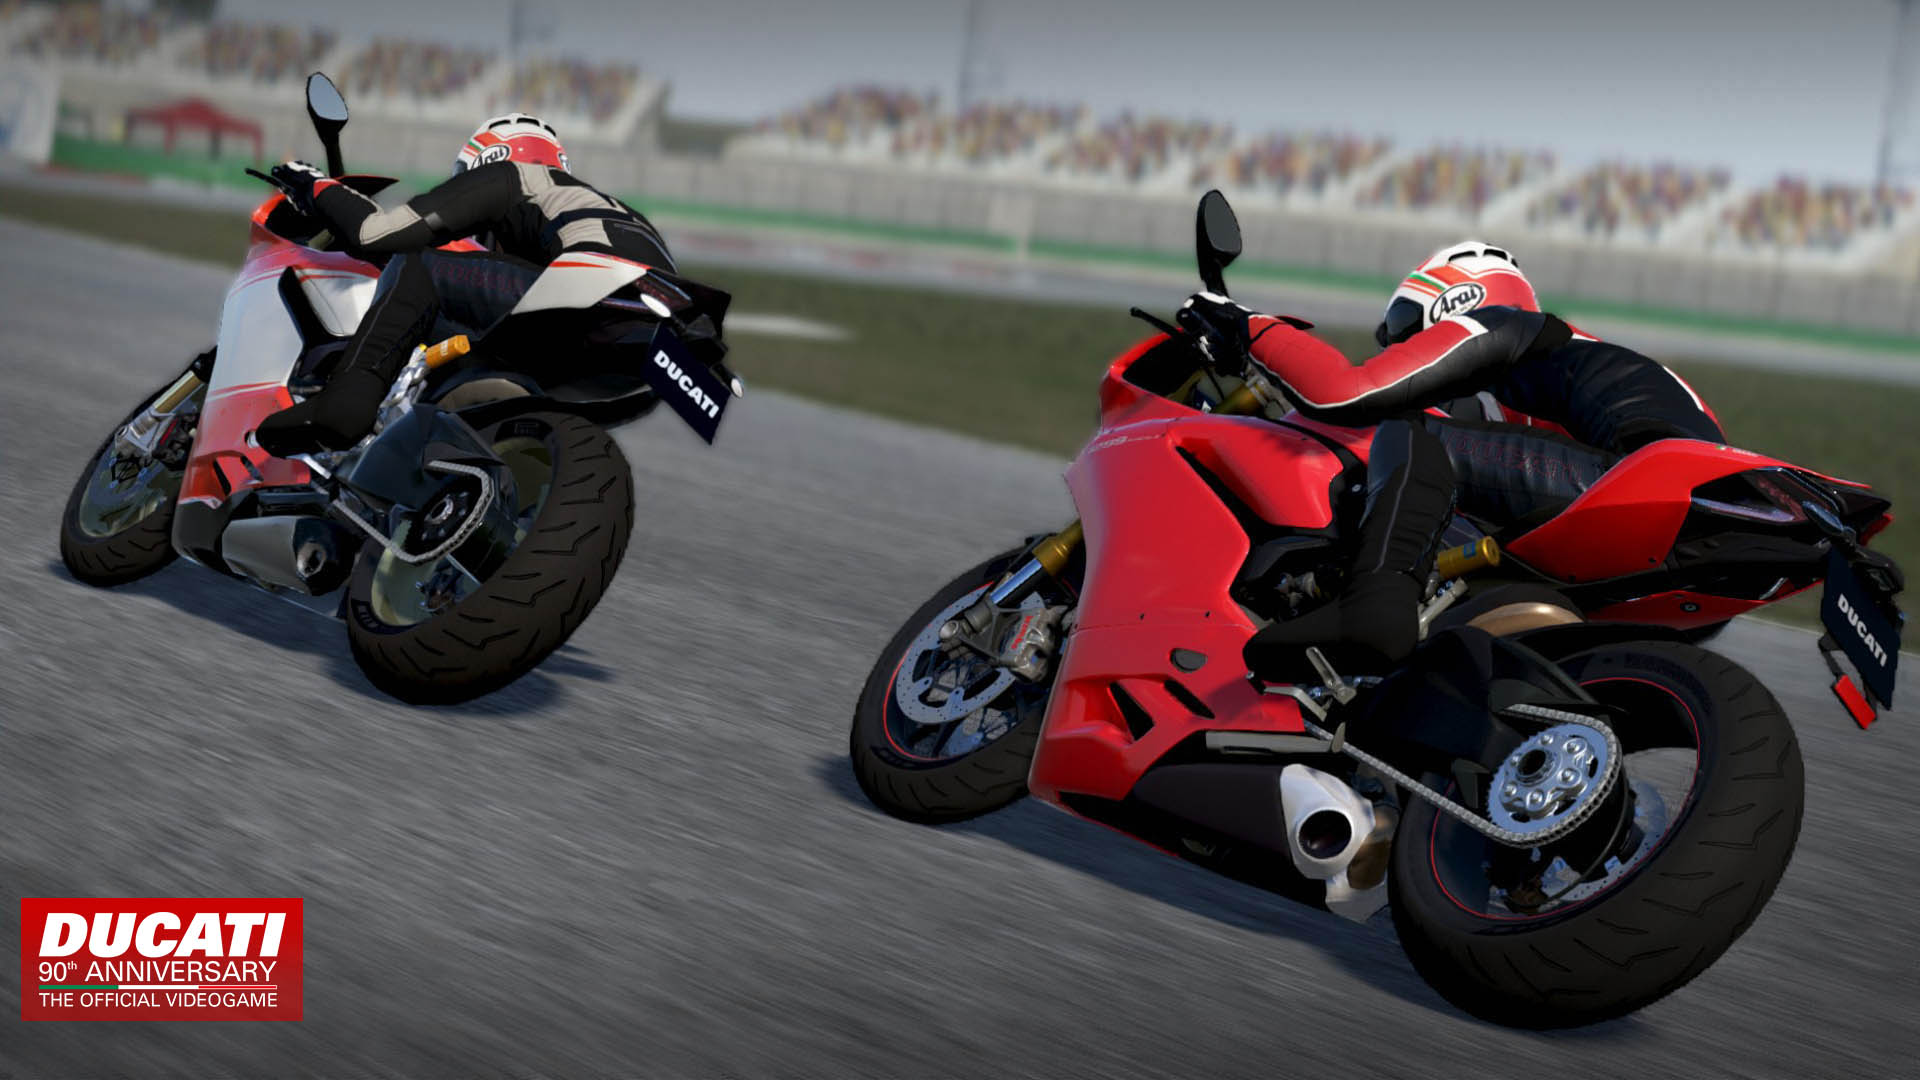 Ducati 90th Anniversary the Official Videogame 1